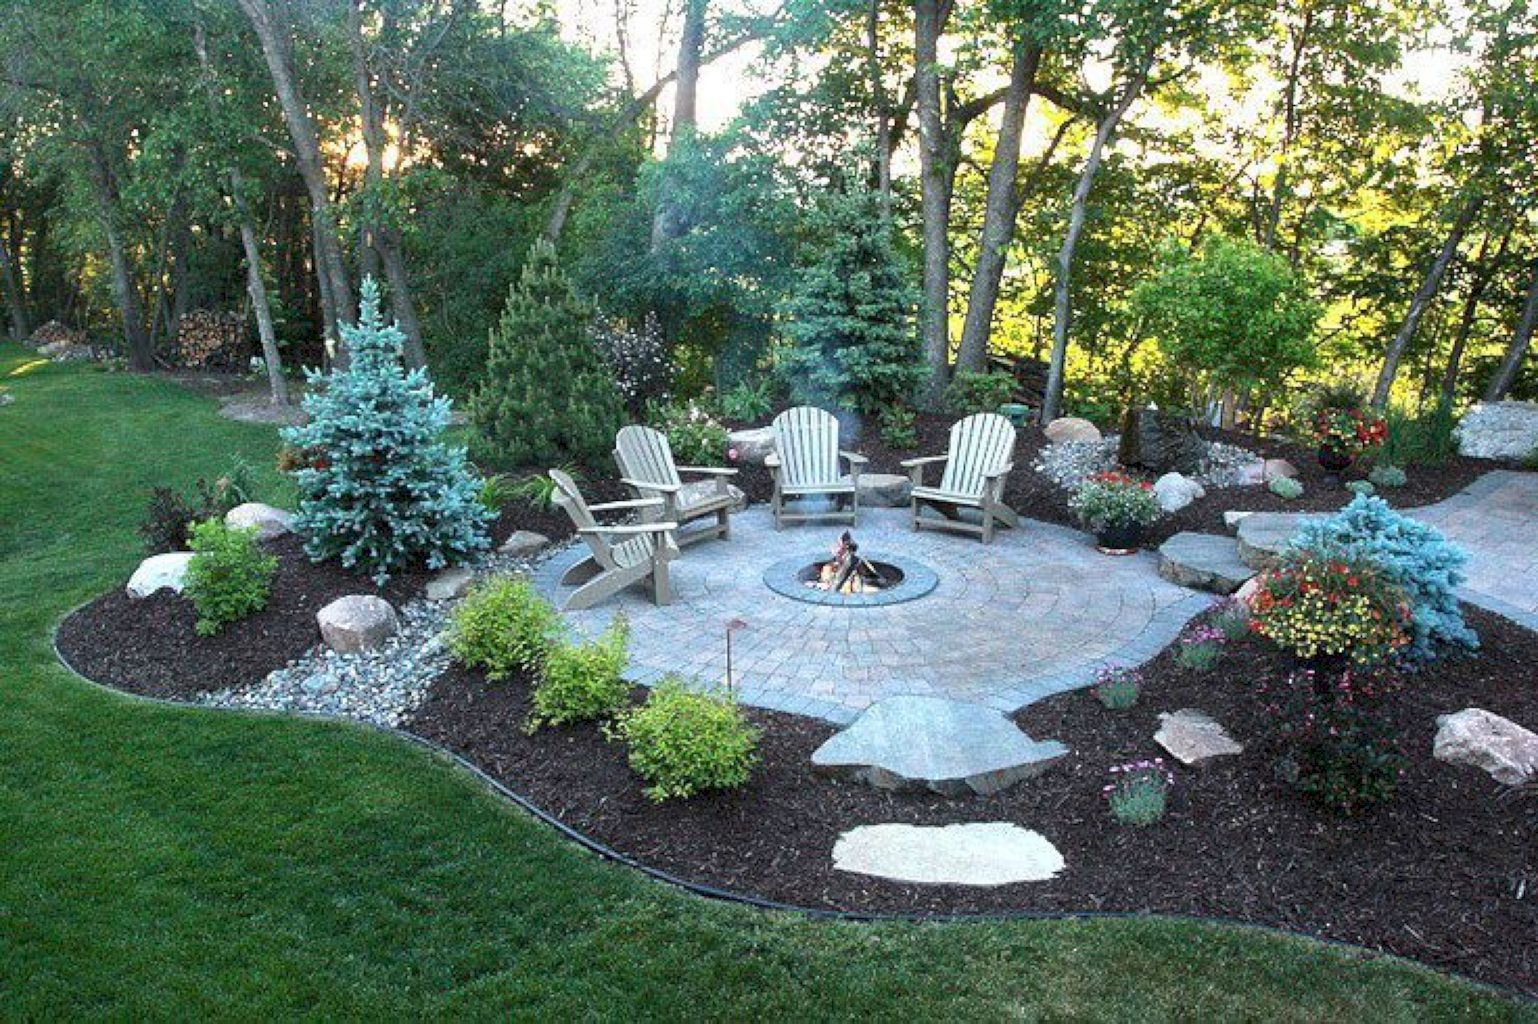 50 Awesome Backyard Fire Pit Design Ideas With Images Backyard